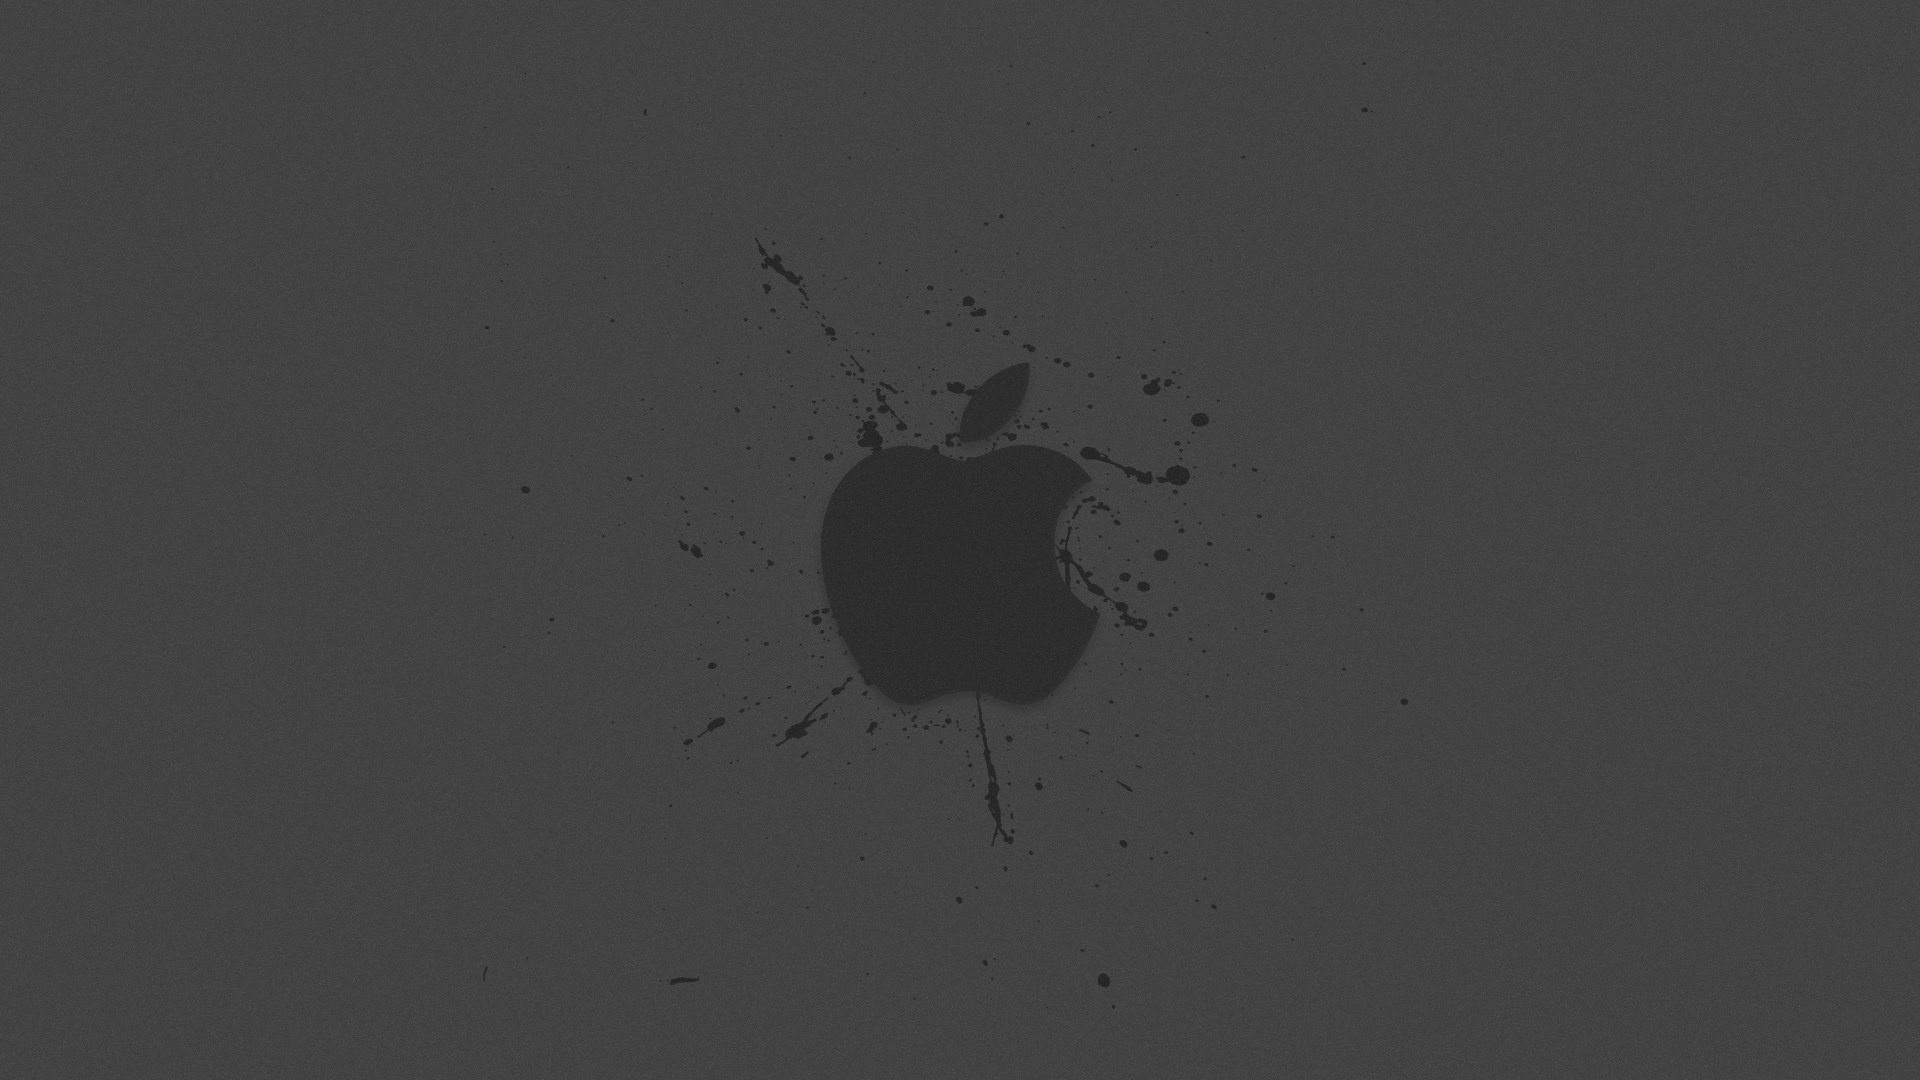 Apple Clean Wallpaper Hd